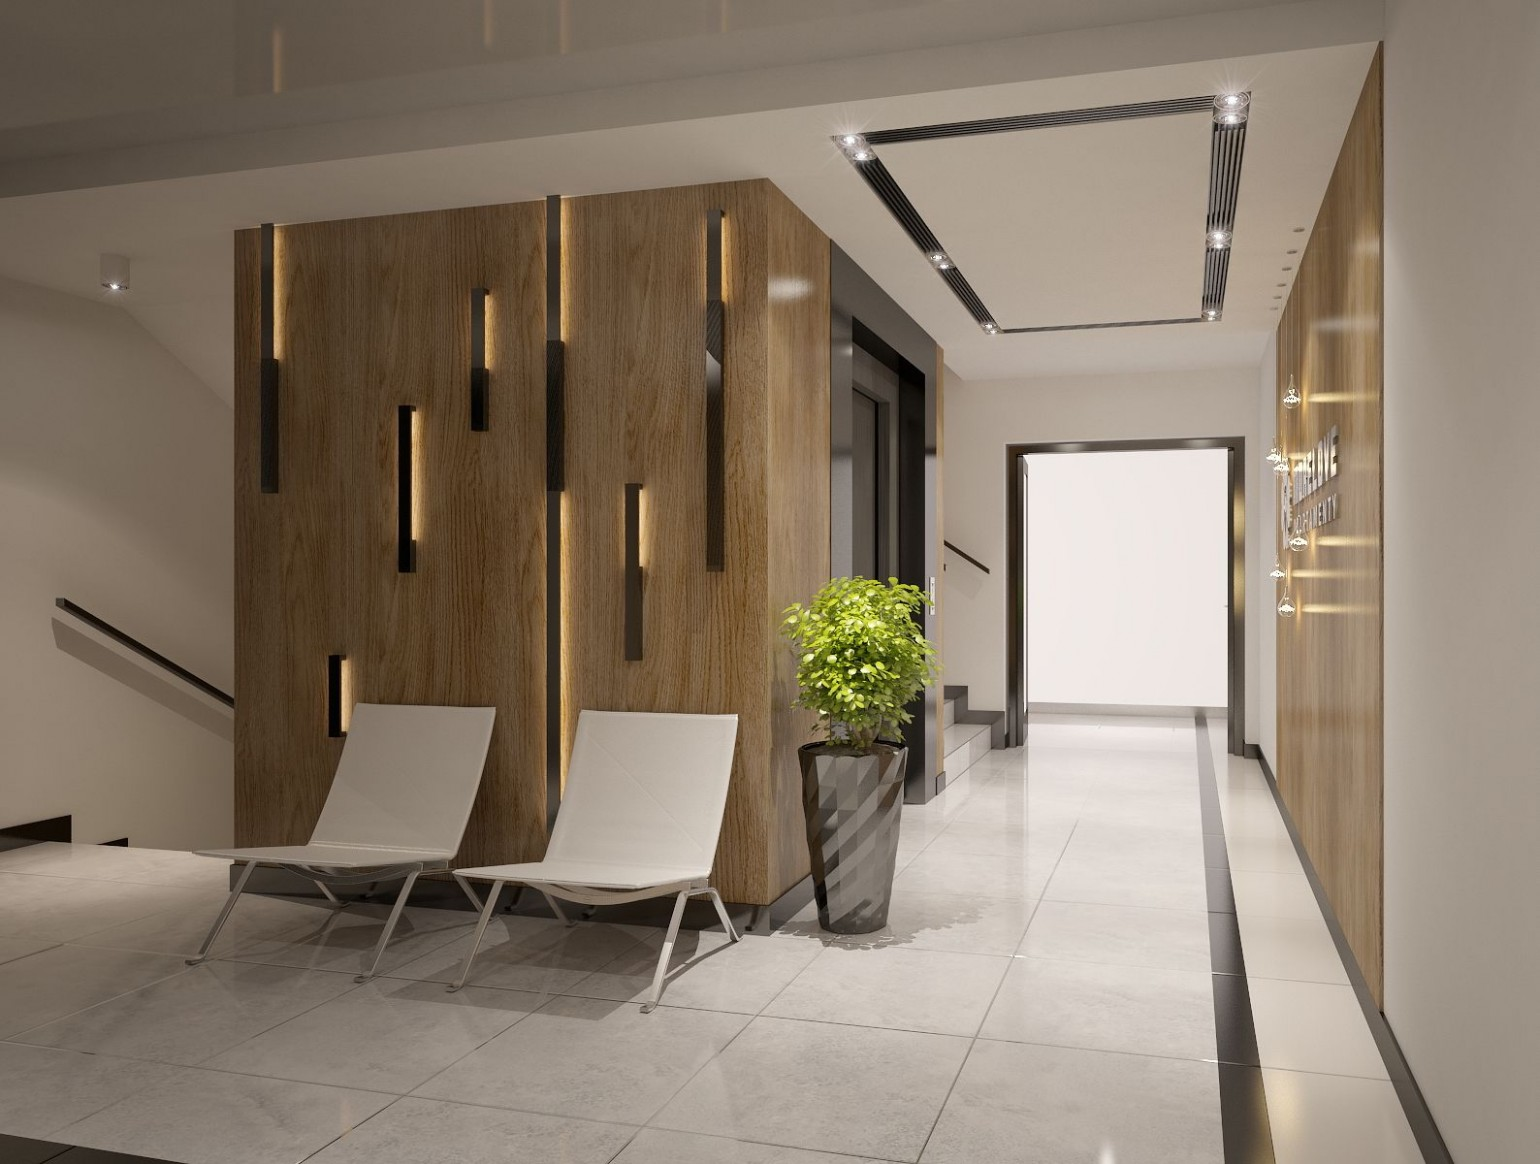 Apartments building Entrance Hall area Foyer Lobby with elevator  - Apartment Entrance Design